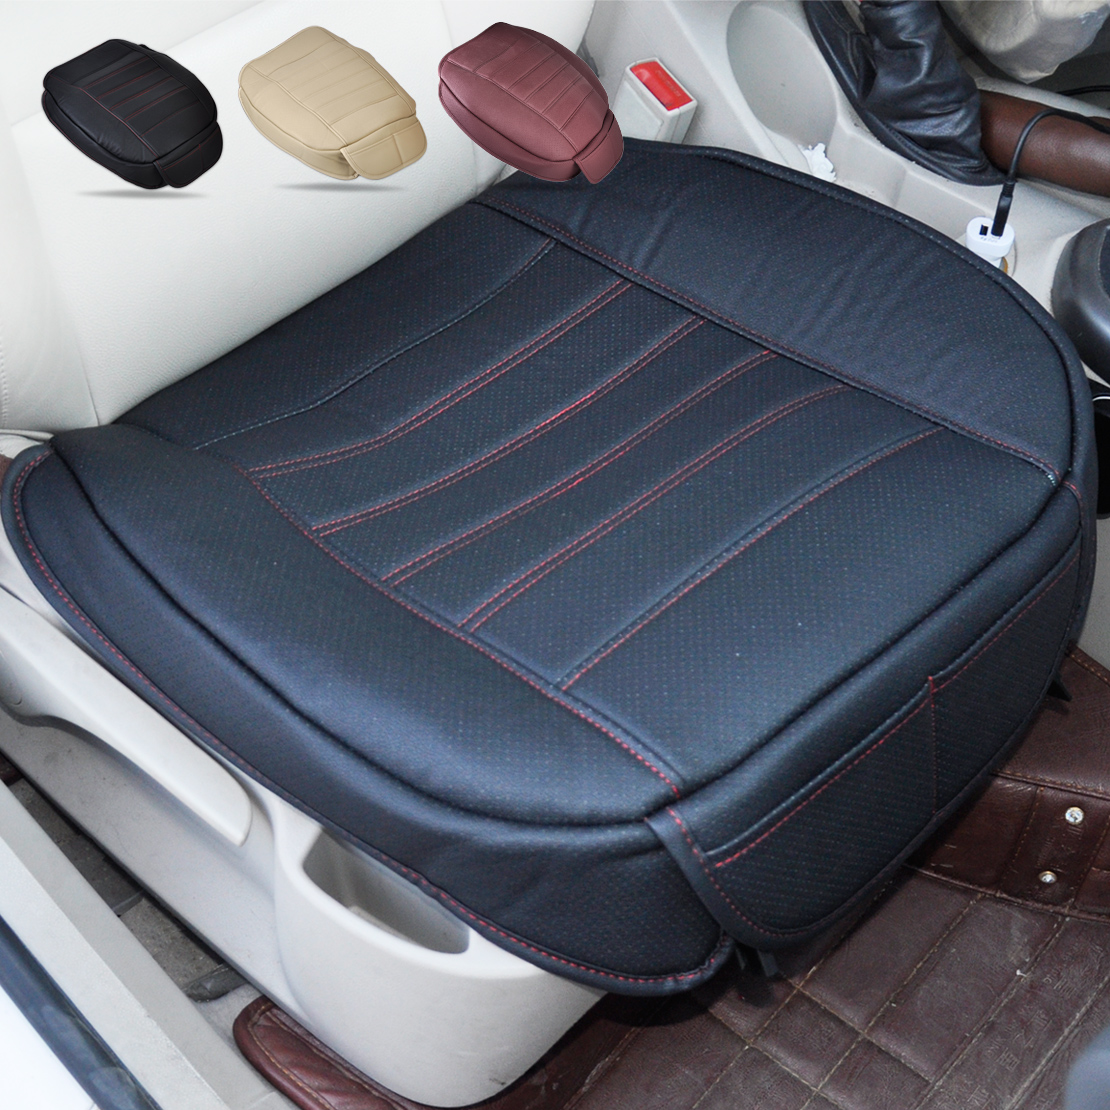 DWCX Universal PU leather Car Interior Front Seat Cover Seatpad For Ford Focus VW Golf Audi A6 BMW E46 E90 Nissan Honda Toyota стоимость